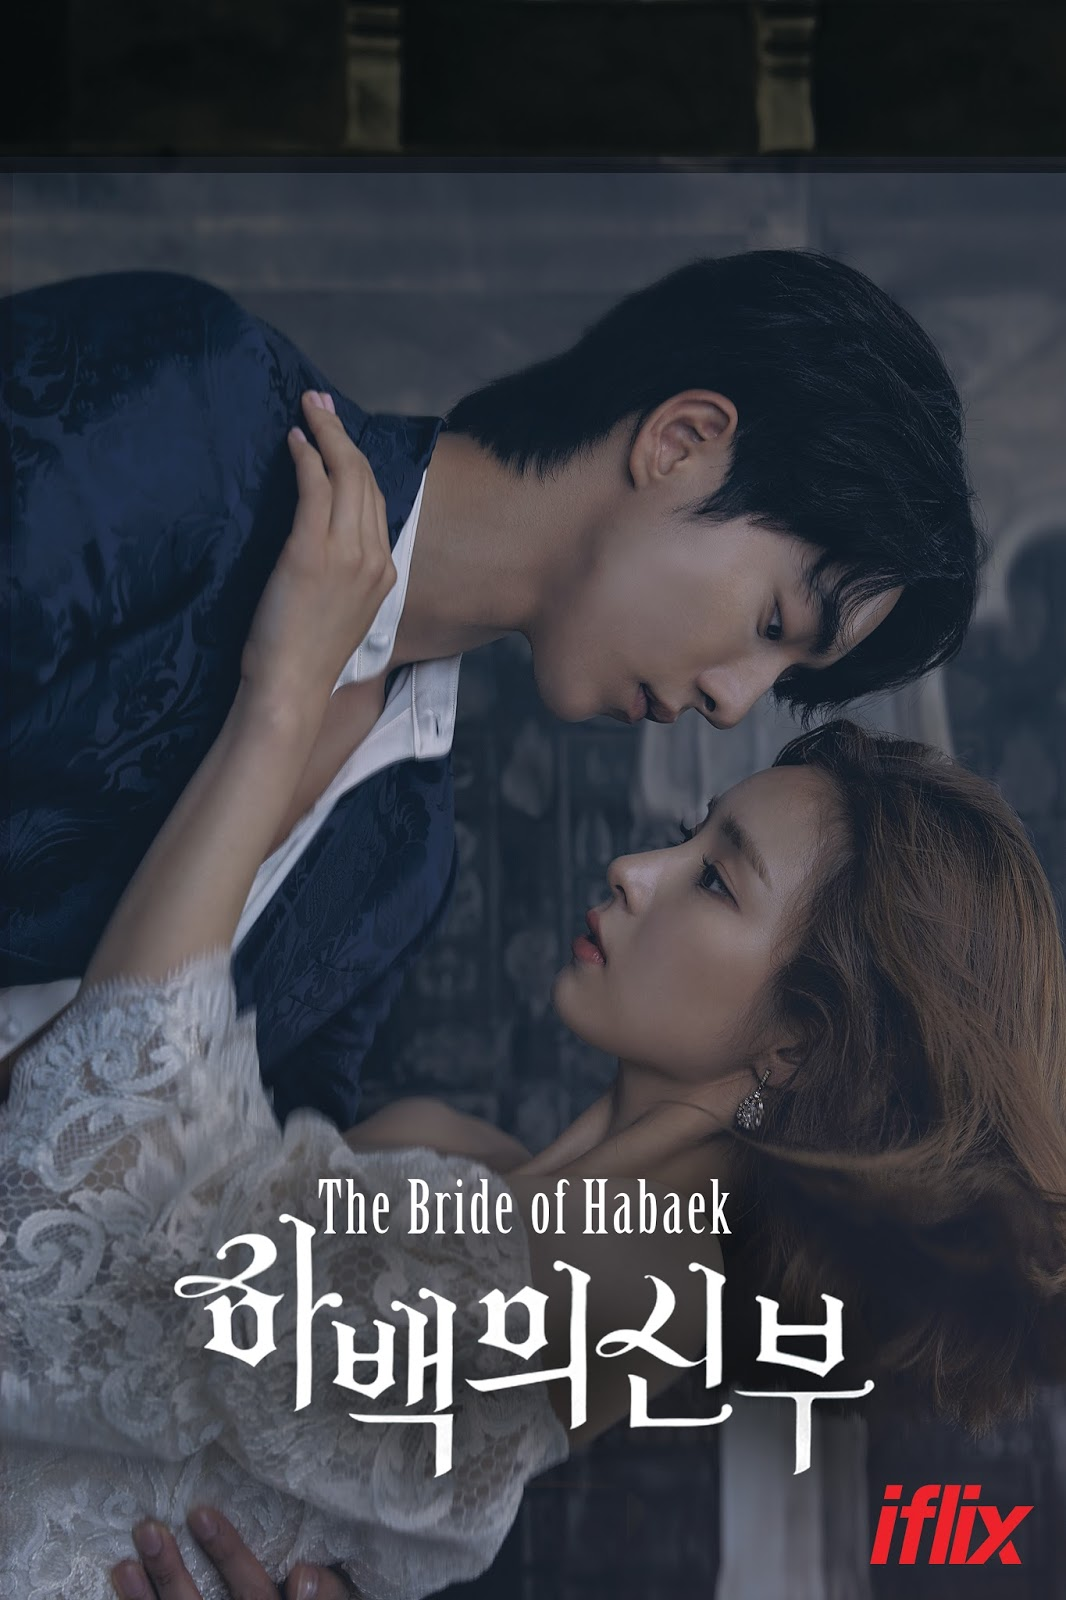 iflix Premieres The Bride of Habaek, express from Korea [full_width]